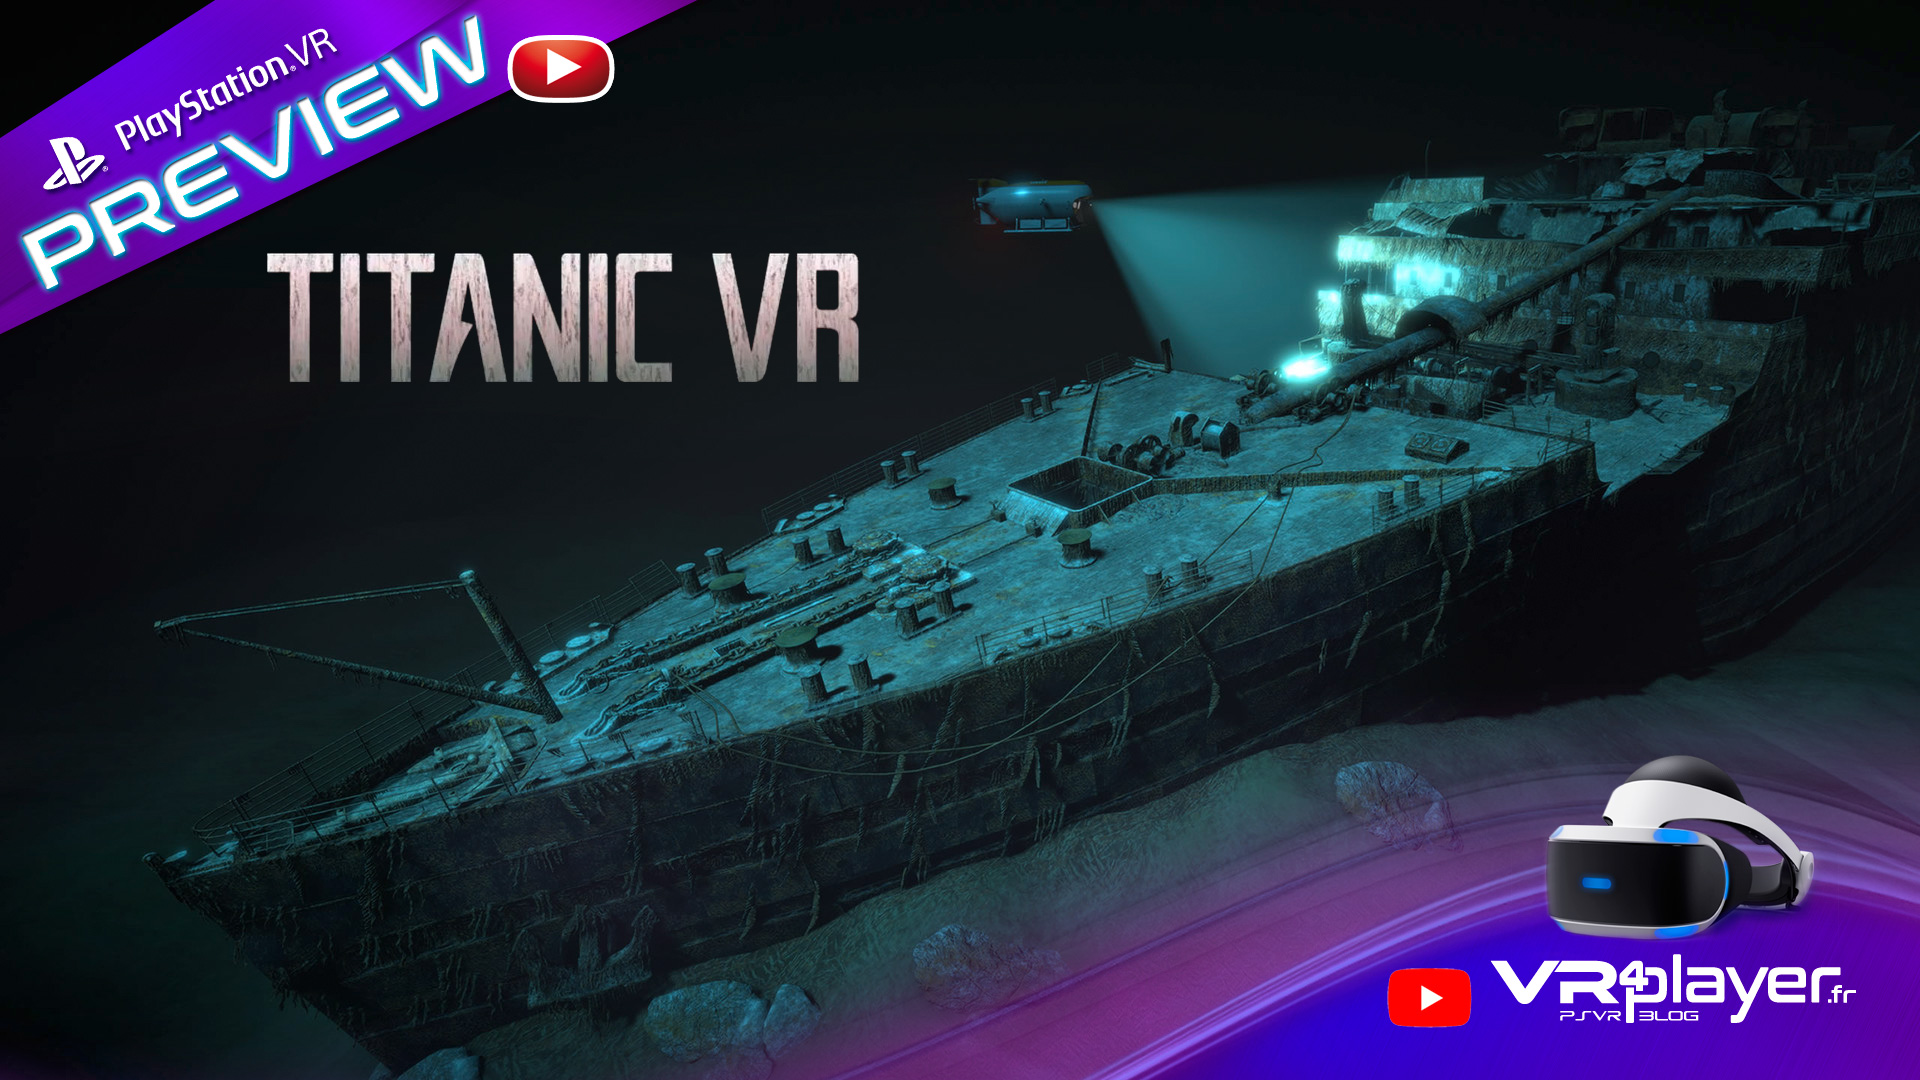 Titanic VR Preview de l'expérience VR4player.fr